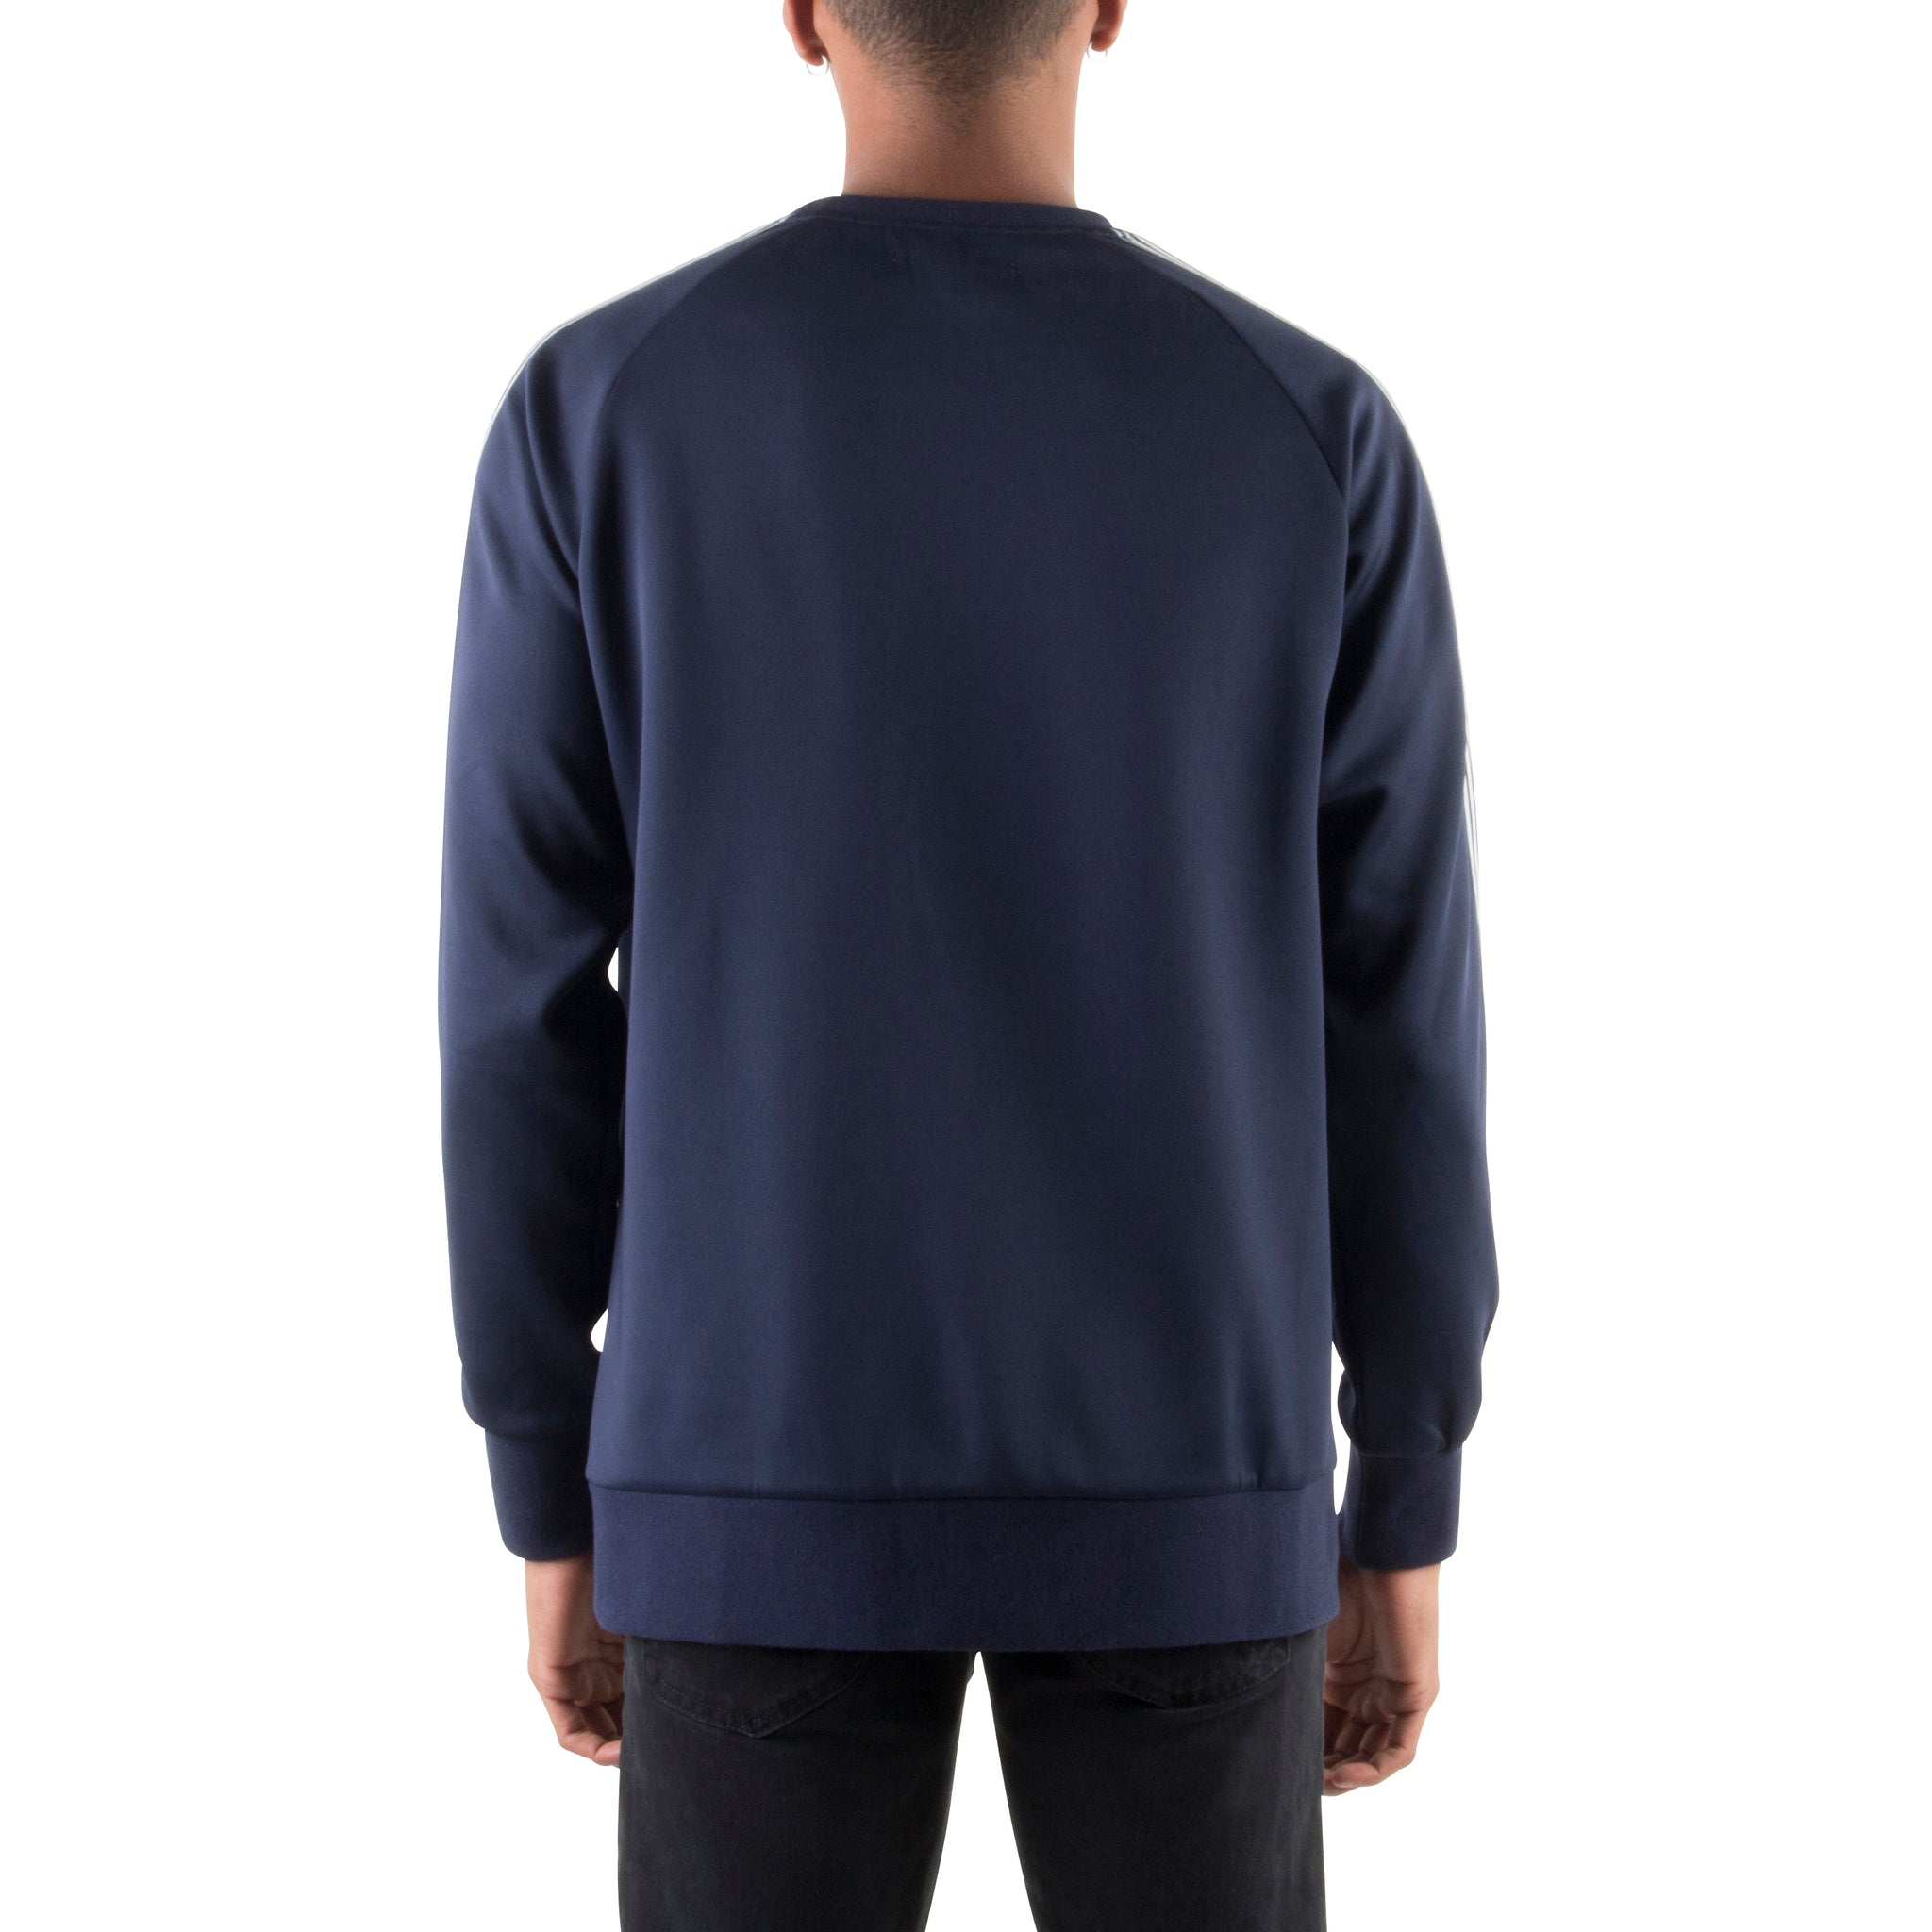 Navy Sporty Sweatshirt